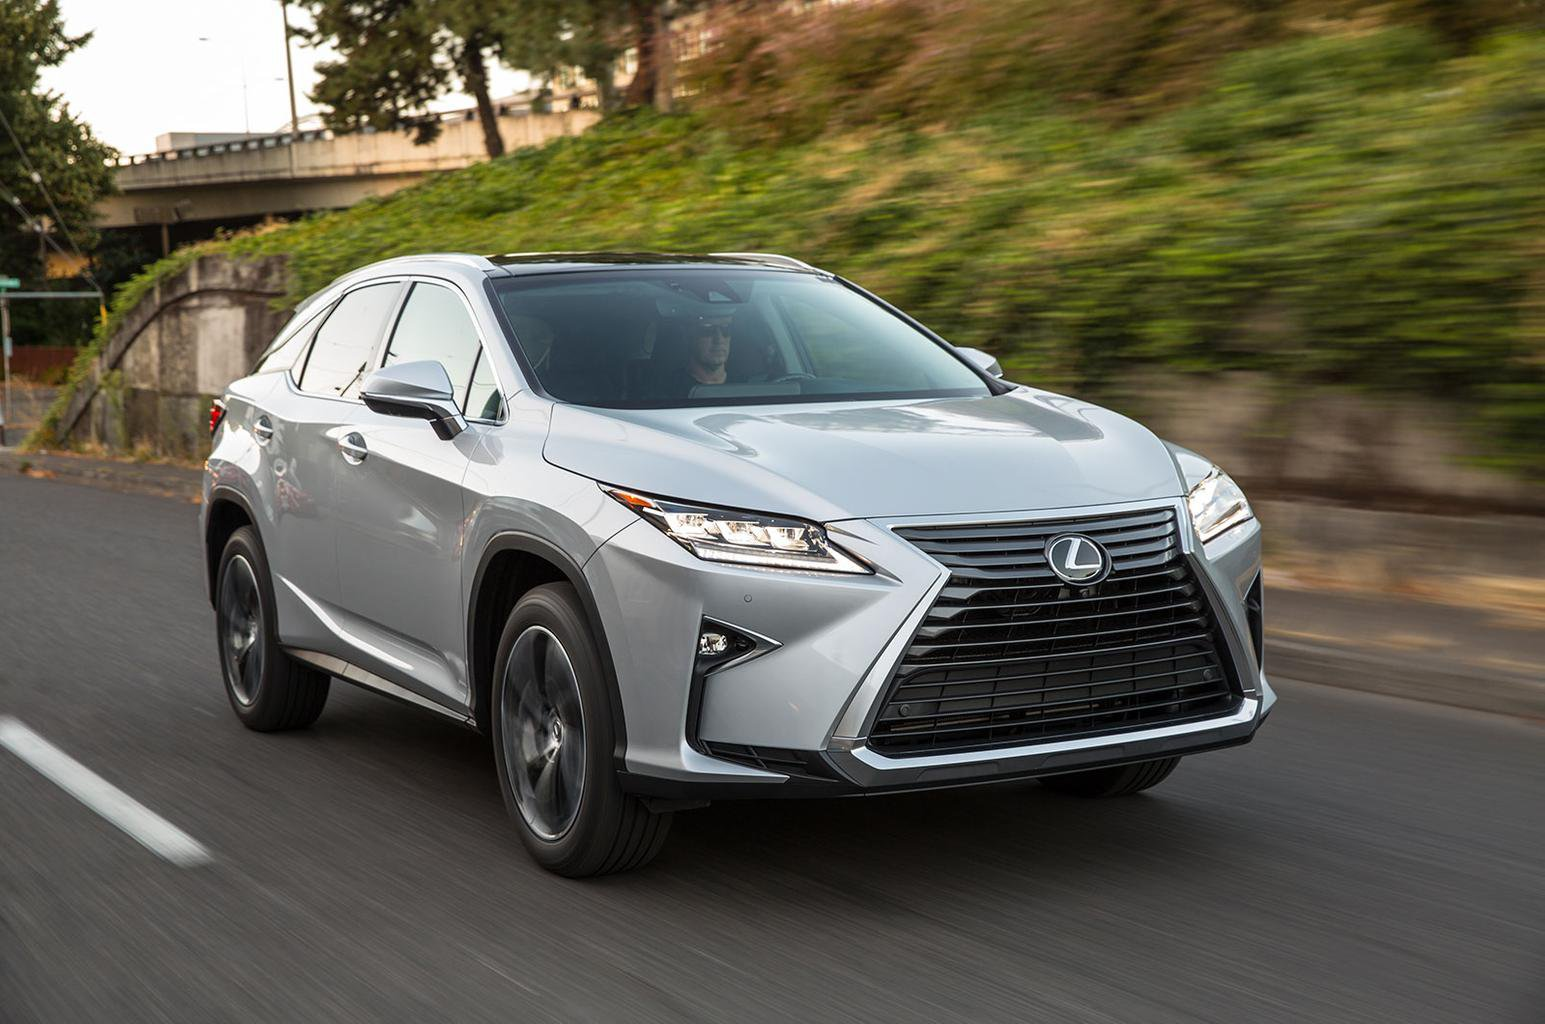 2016 Lexus RX - pricing, pictures and specification